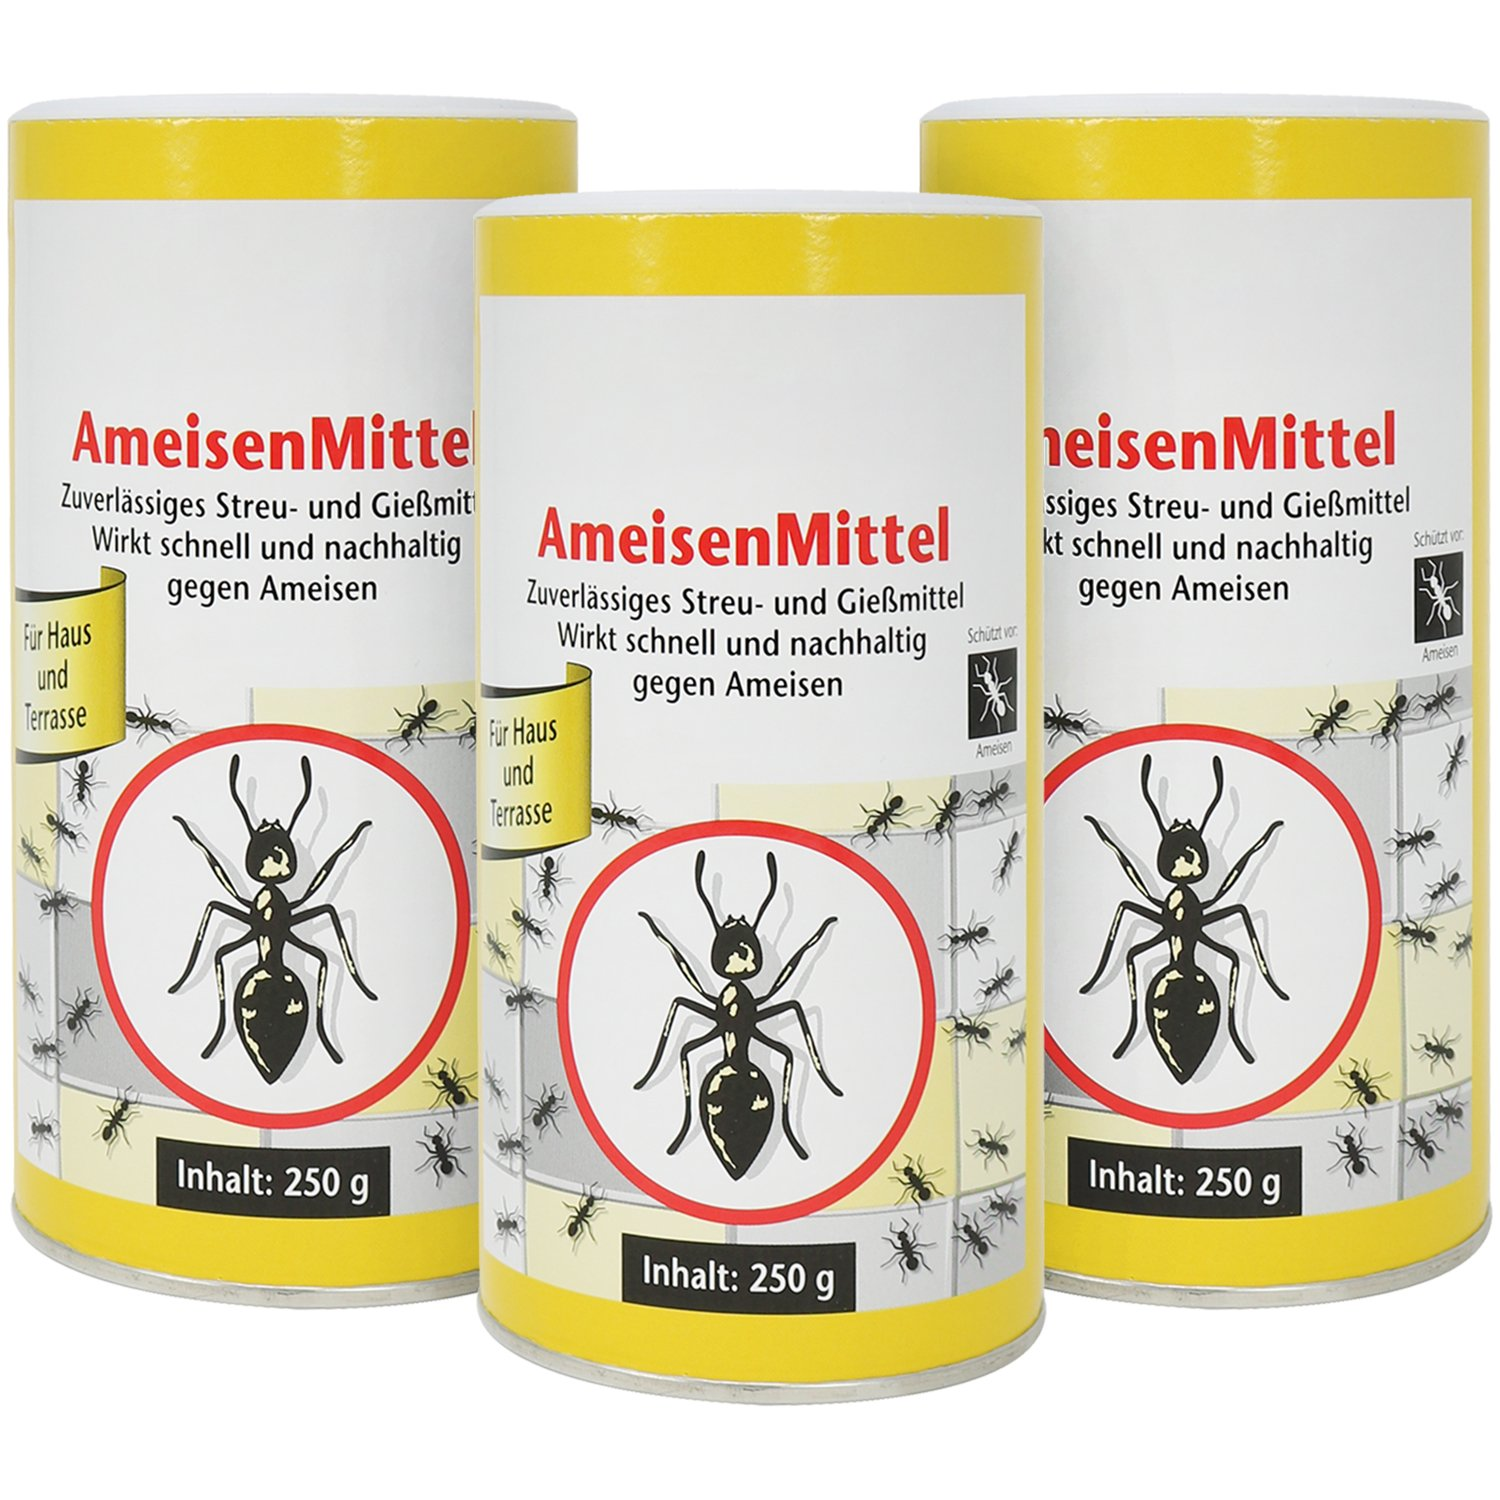 COM-FOUR 3x ANT KILLER WITH BAIT Each 250g, and Pouring Poison Ant, 750 g (03 pieces - ant funds)